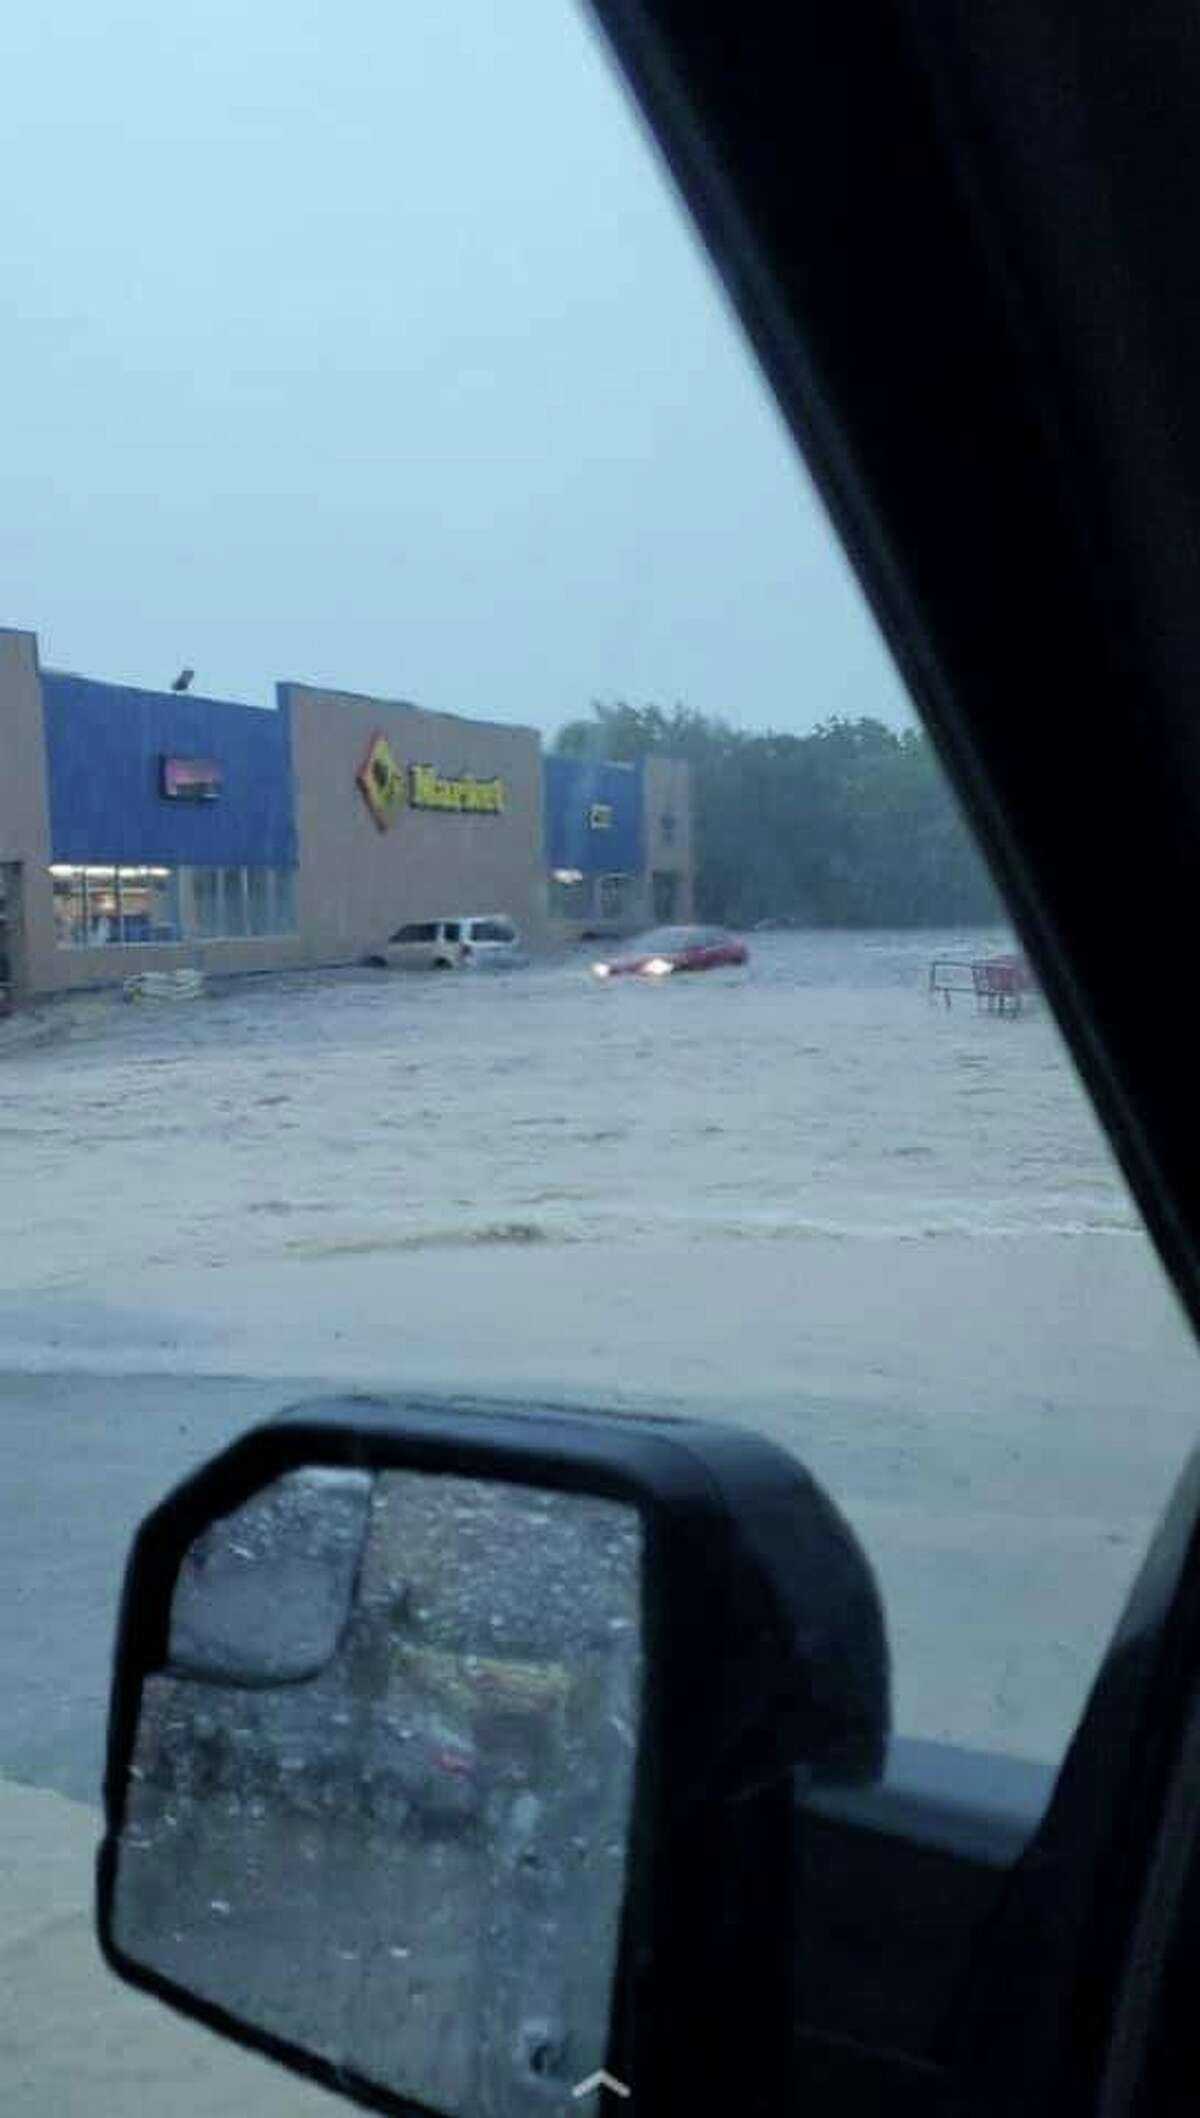 Troy Miller shared this photo with mySA showing a flooded parking lot at a Lowe's Market in Startzille, just outside of Canyon Lake, on May 12, 2020.